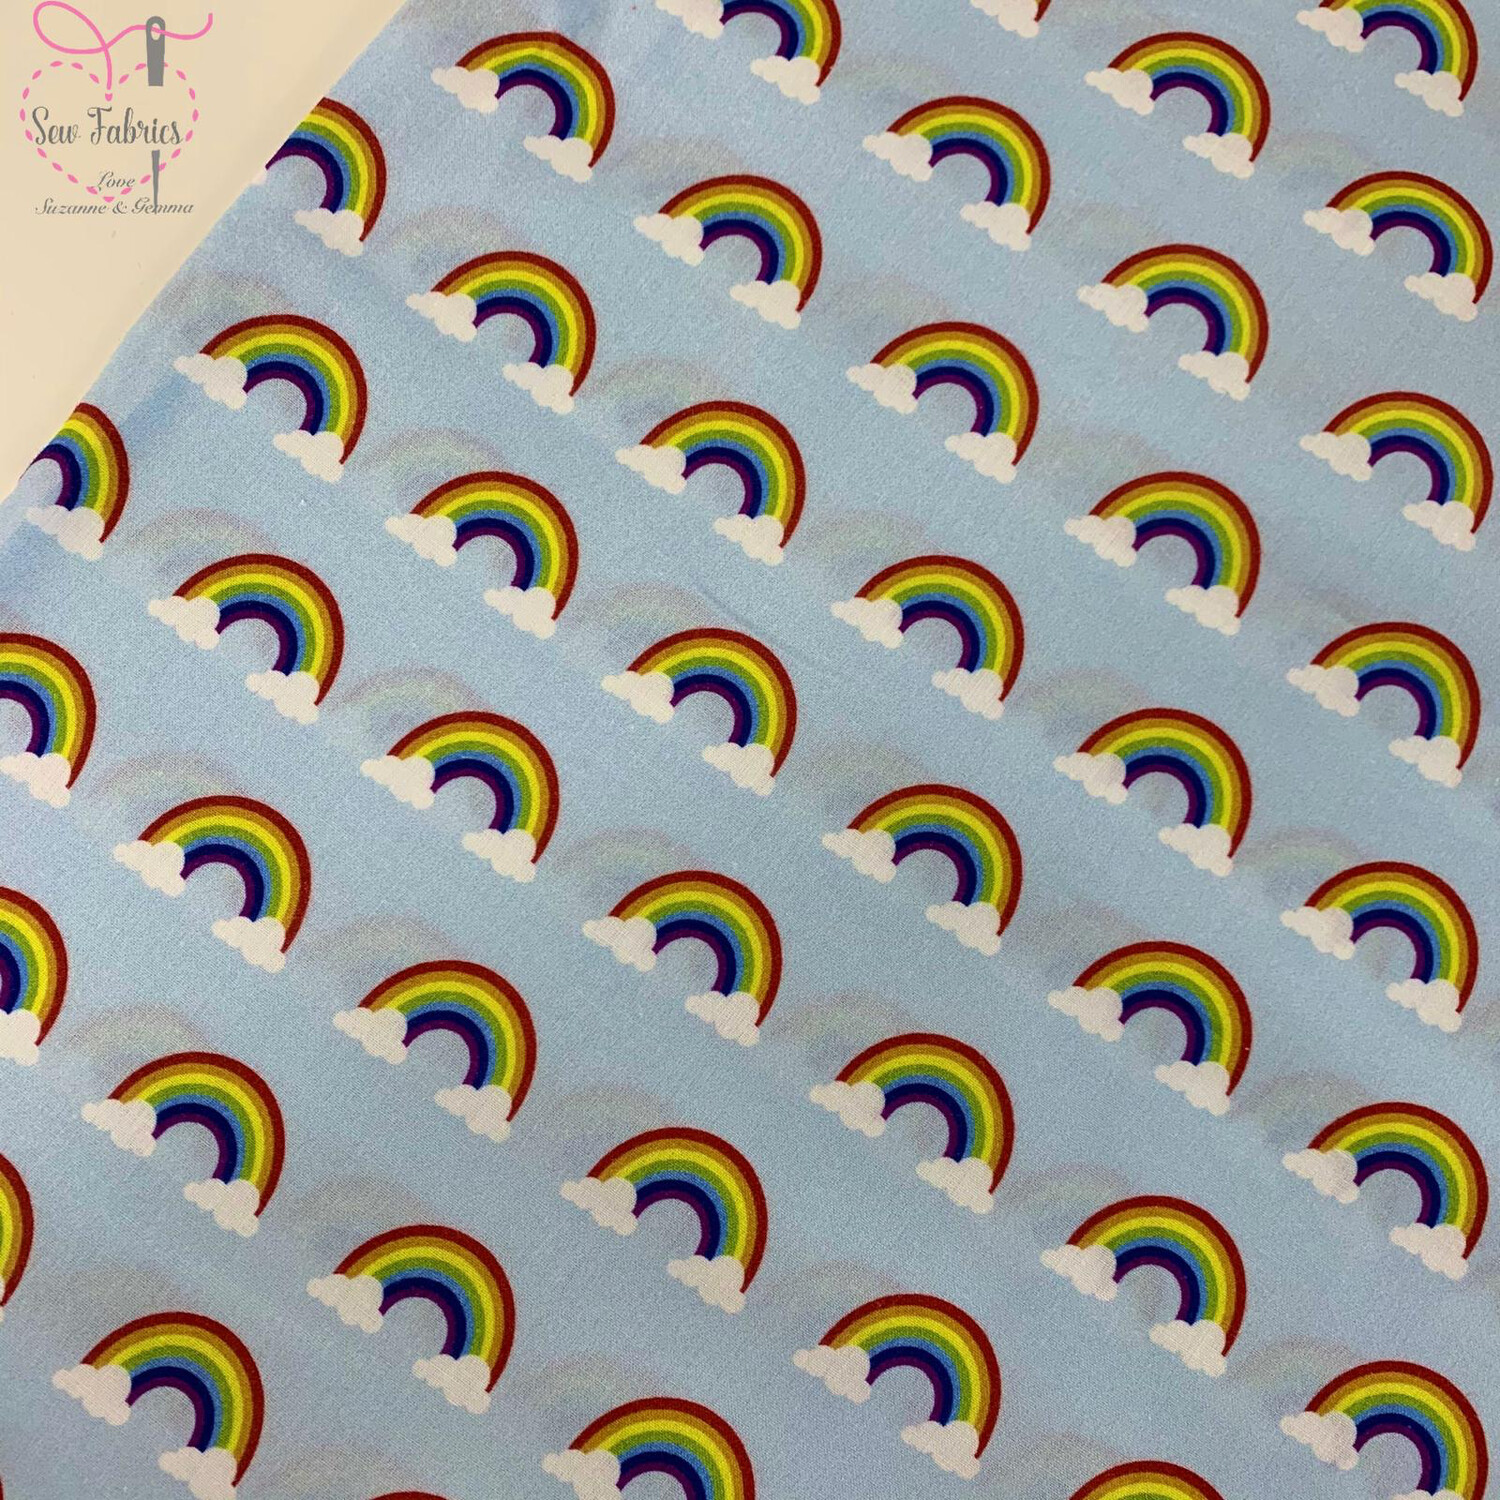 "Baby Blue Rainbow Clouds Digital Cotton Design, The Little Johnny Collection Fabric 100% Cotton 59"" Wide Width"